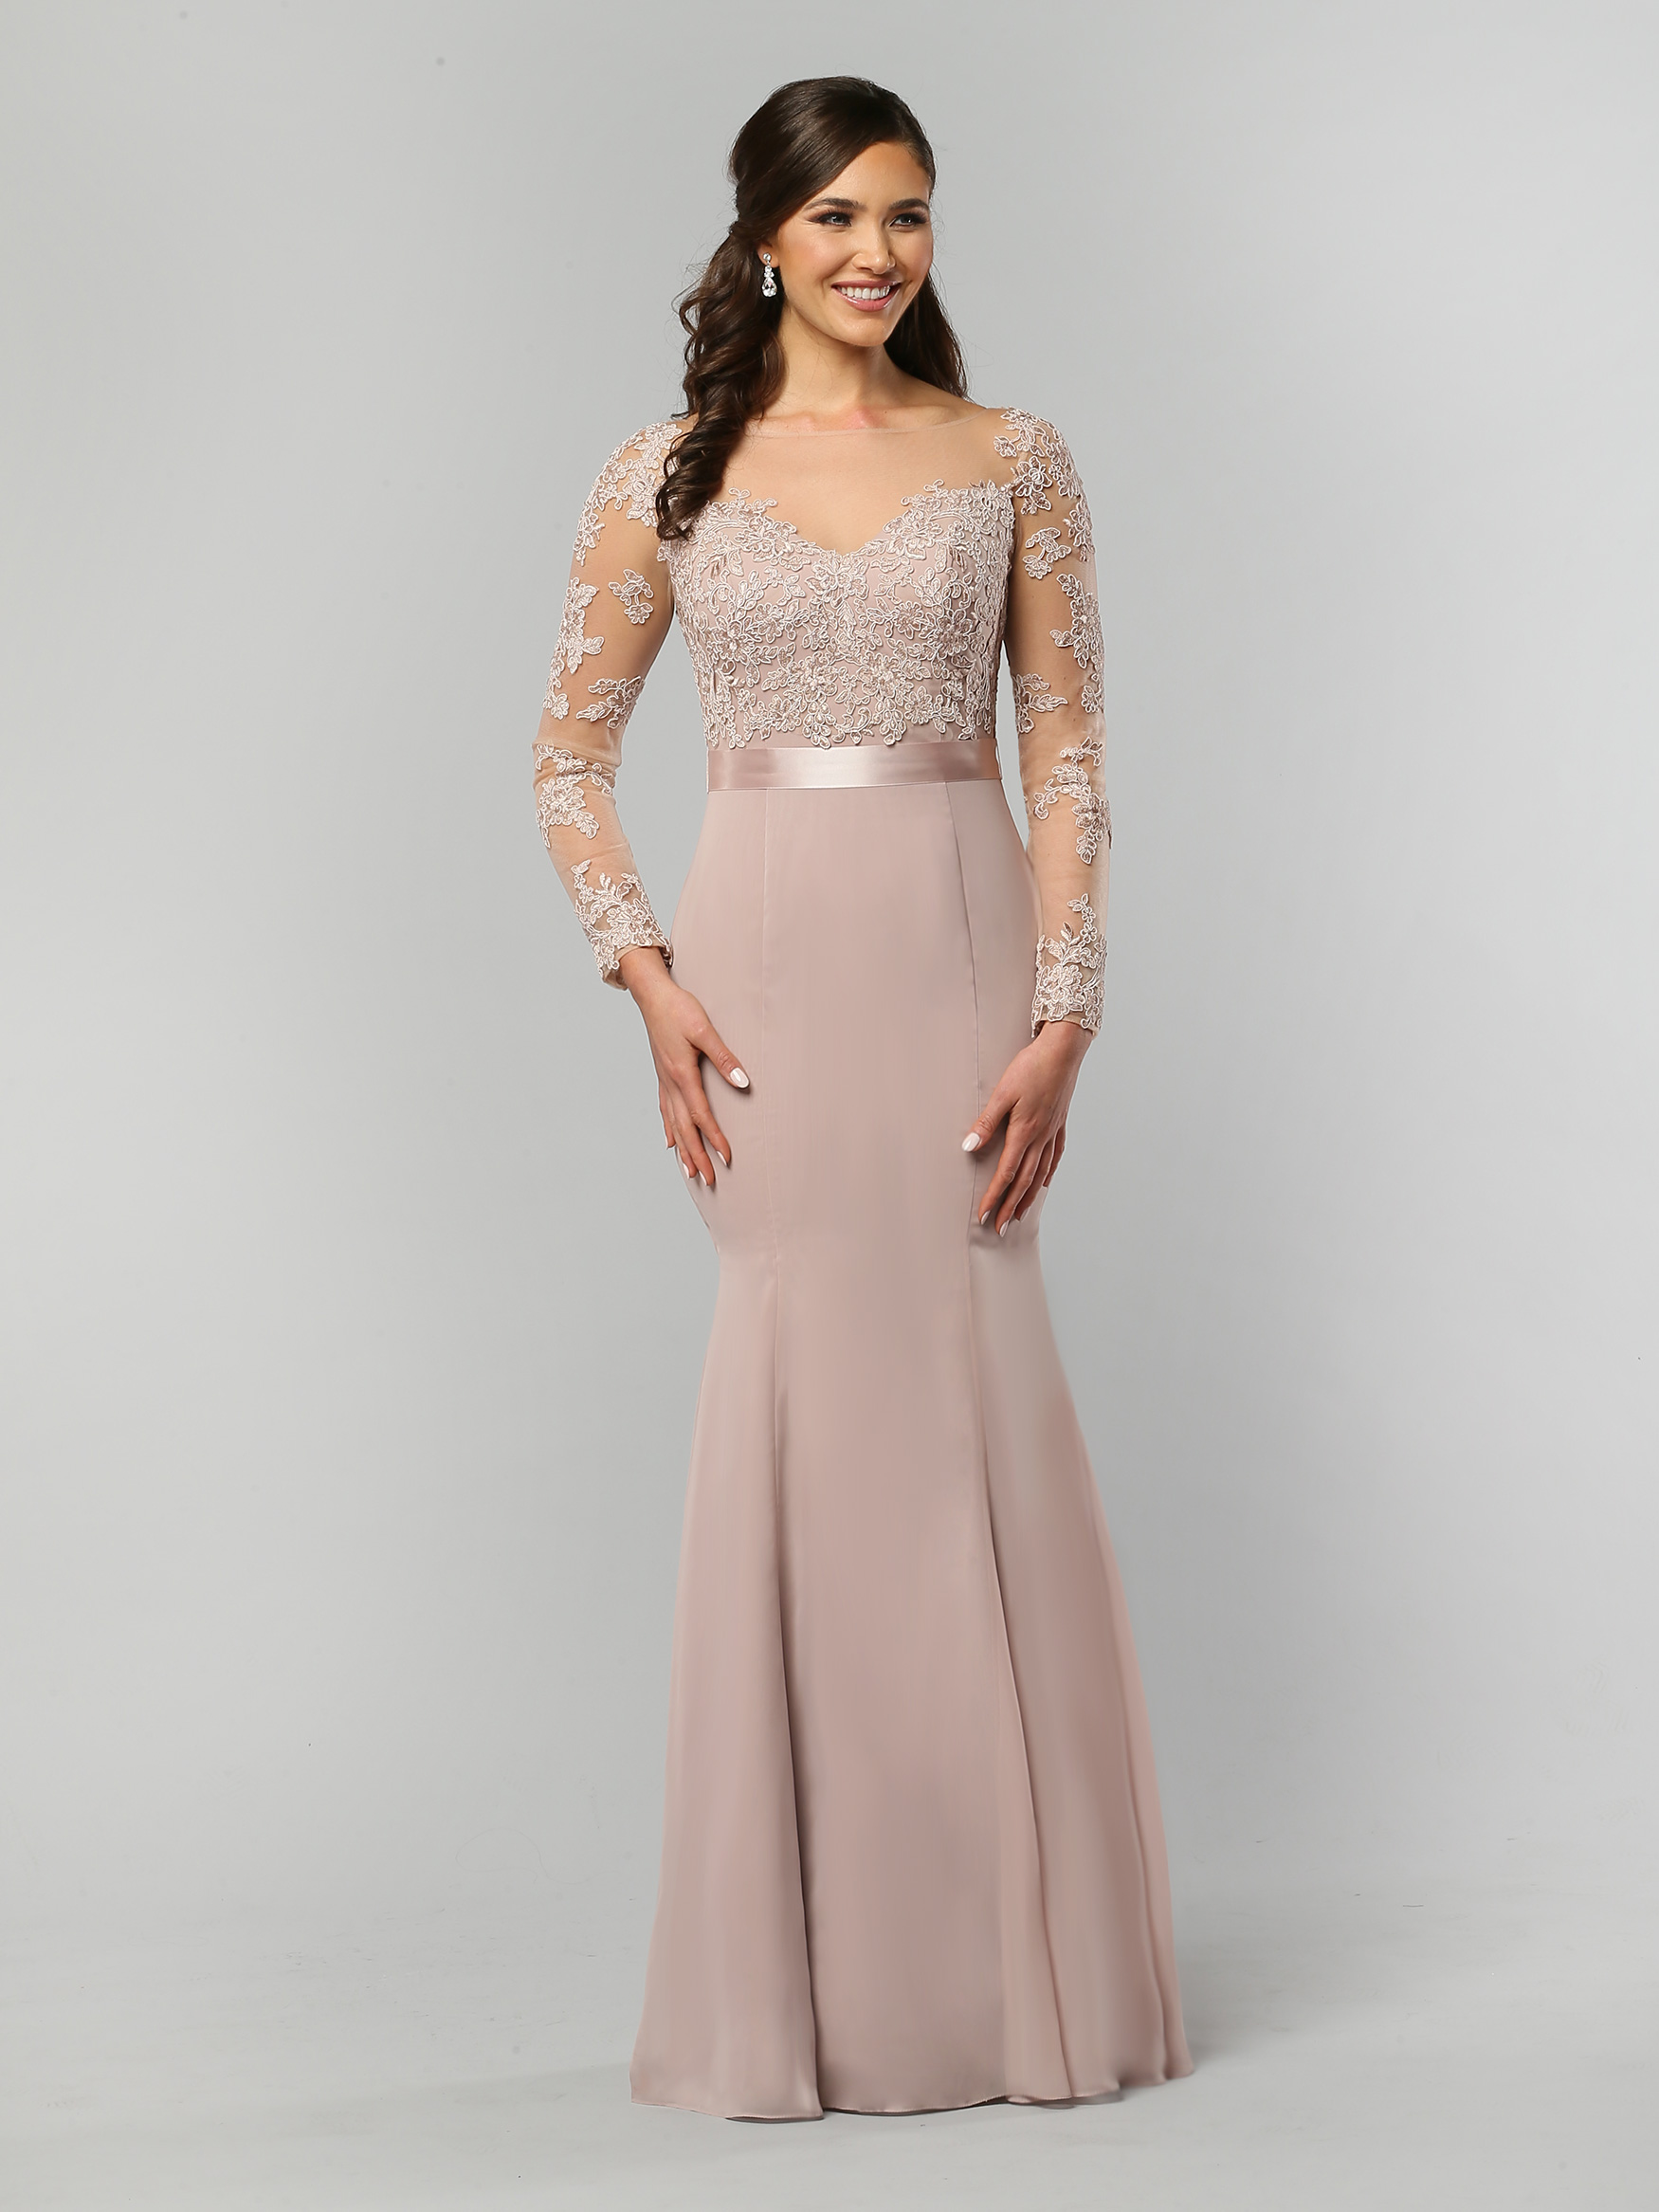 Bridesmaid dresses davinci bridal contemporary classic and affordable davinci bridesmaid dresses come in shape flattering silhouettes that will have each and every one of your attendants ombrellifo Choice Image